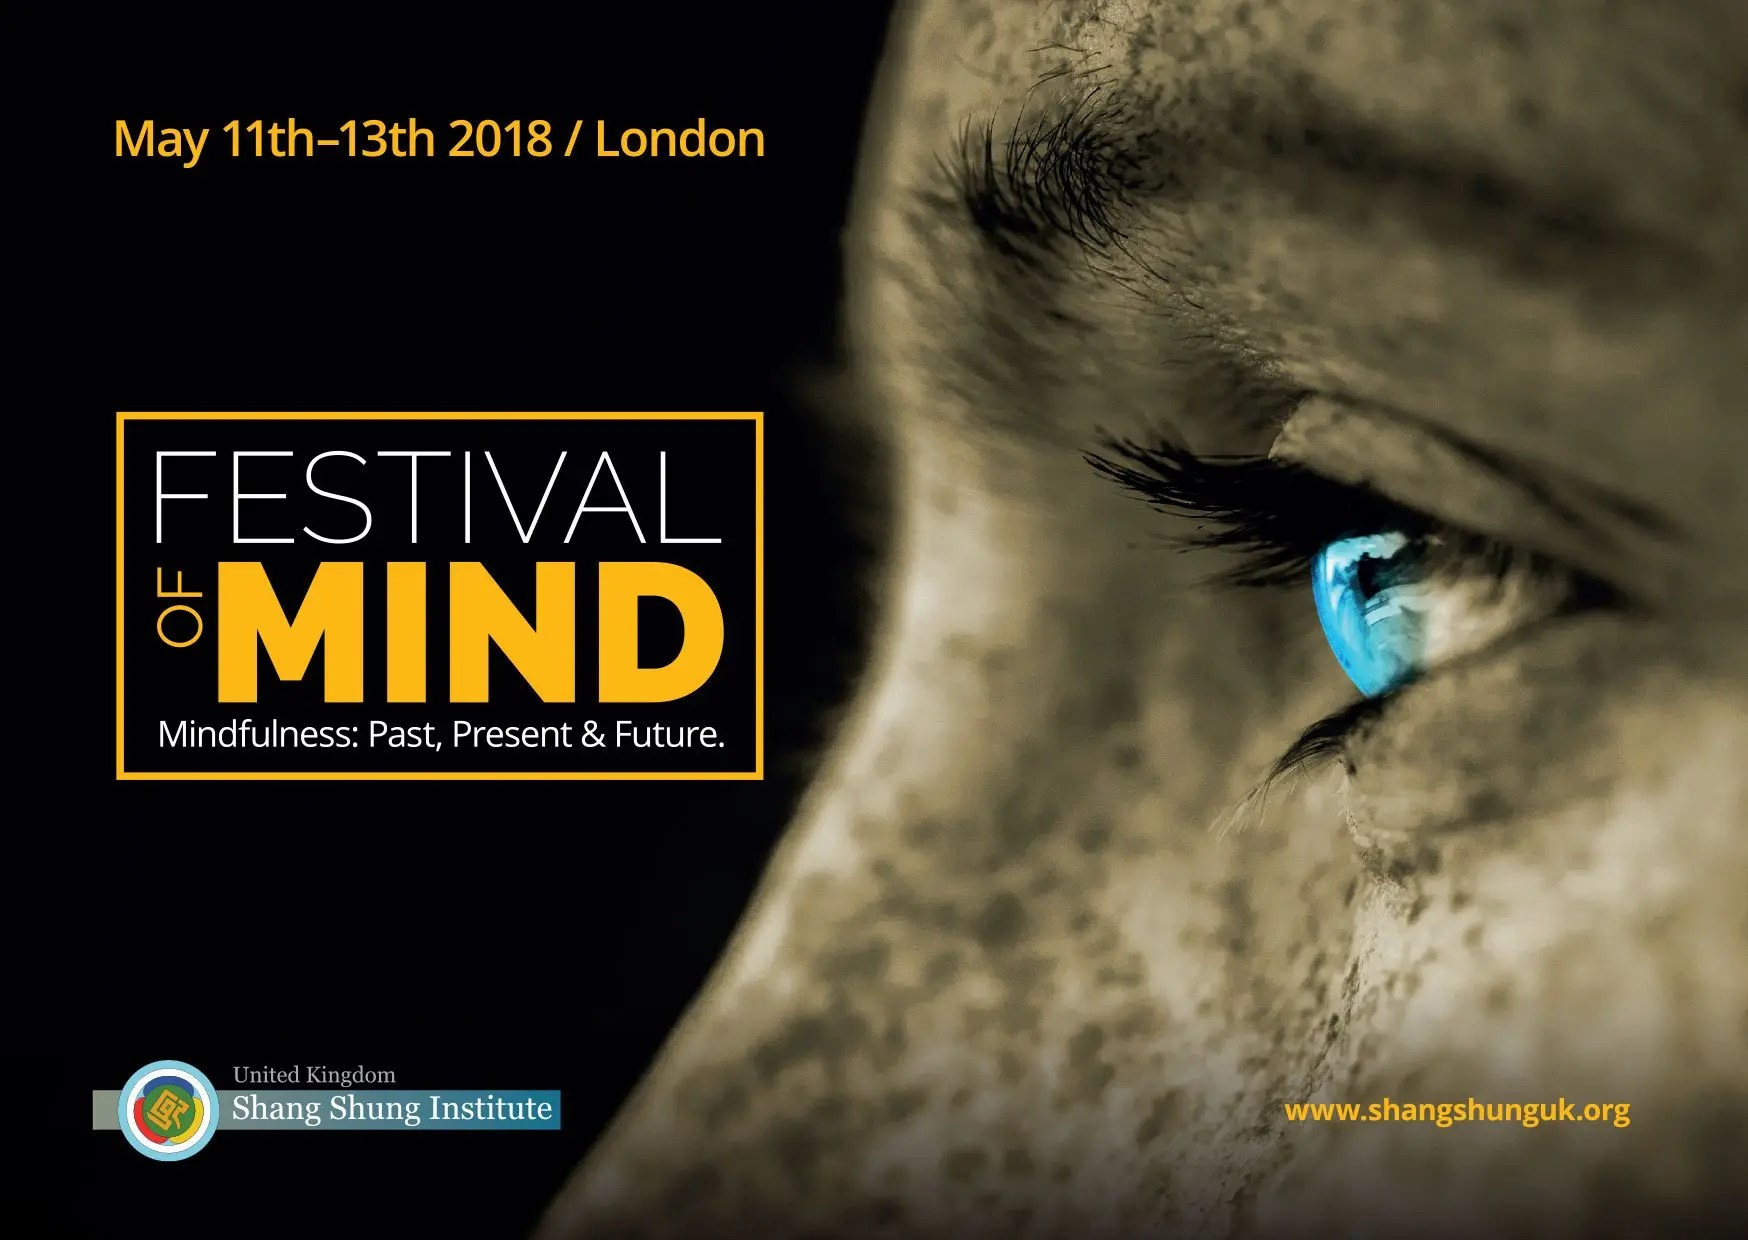 Festival_of_mind_A6H_02-2